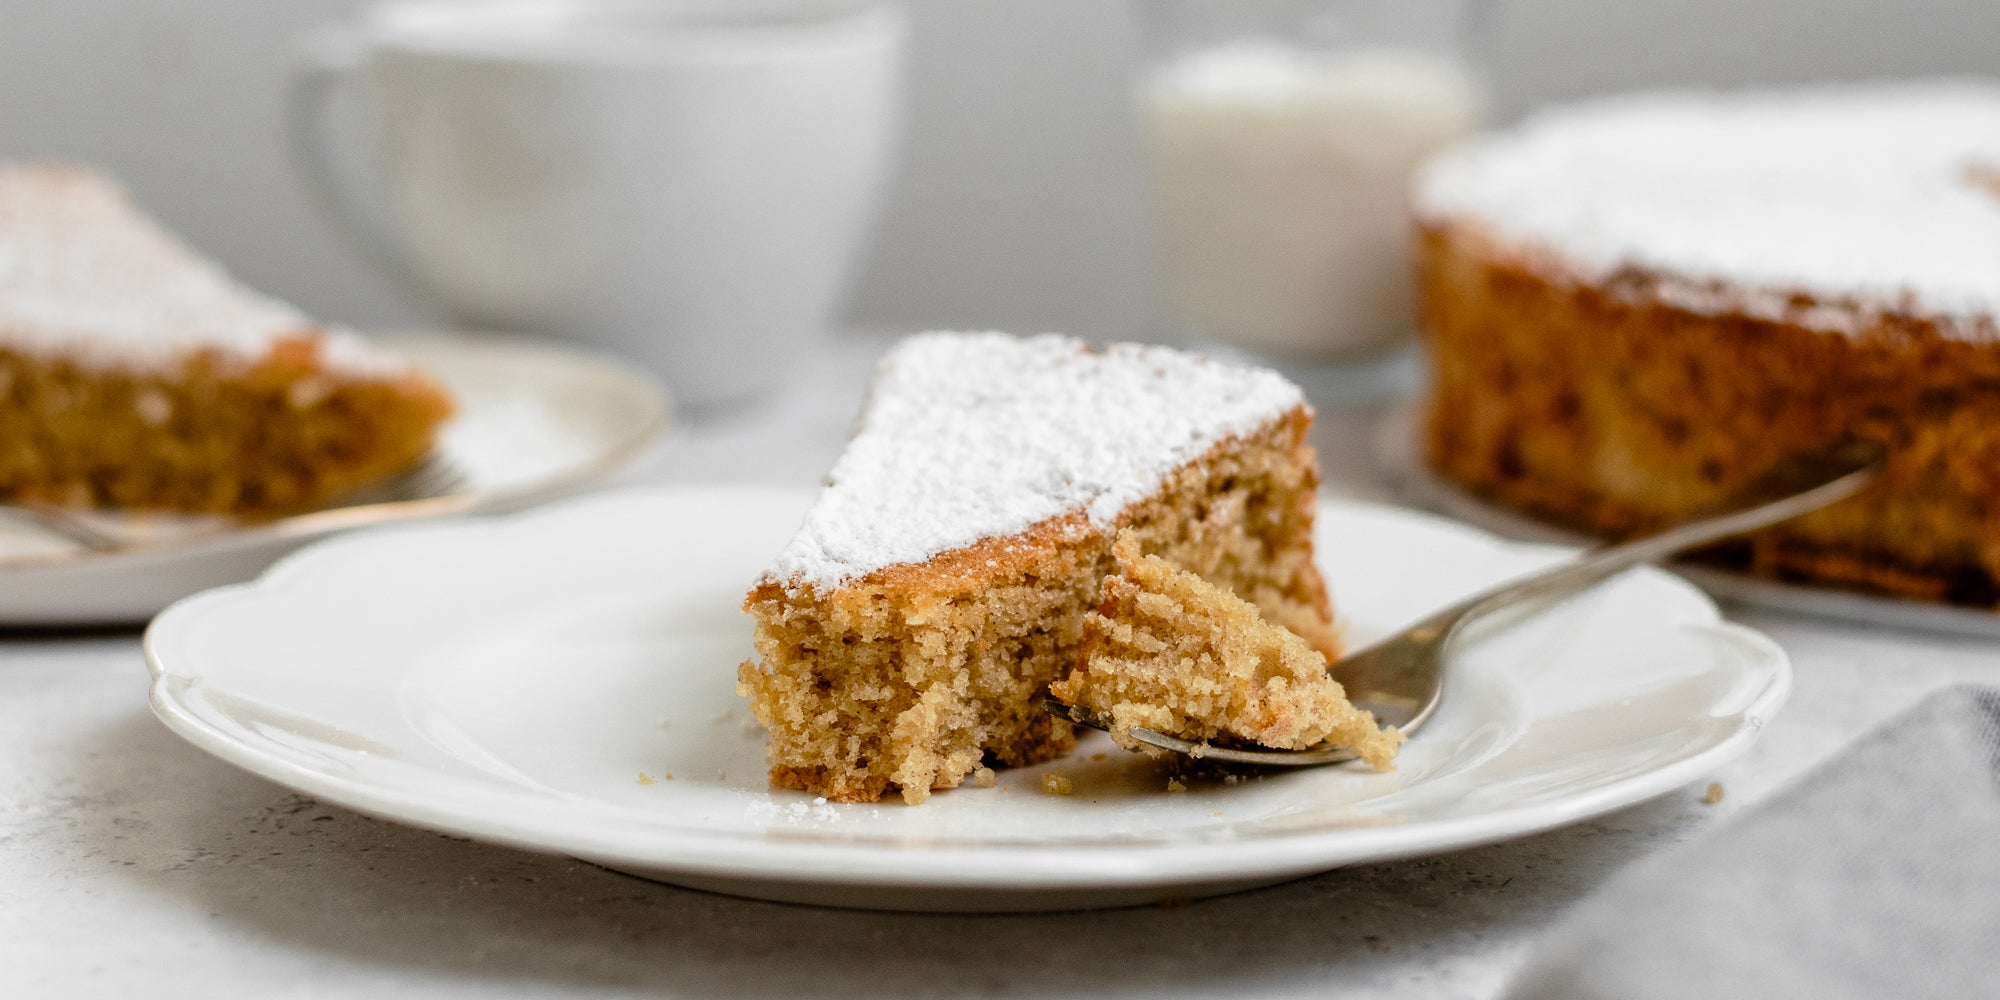 Close up slice of Tarta de Santiago dusted with icing sugar, on a plate with a fork with a bite taken out of it